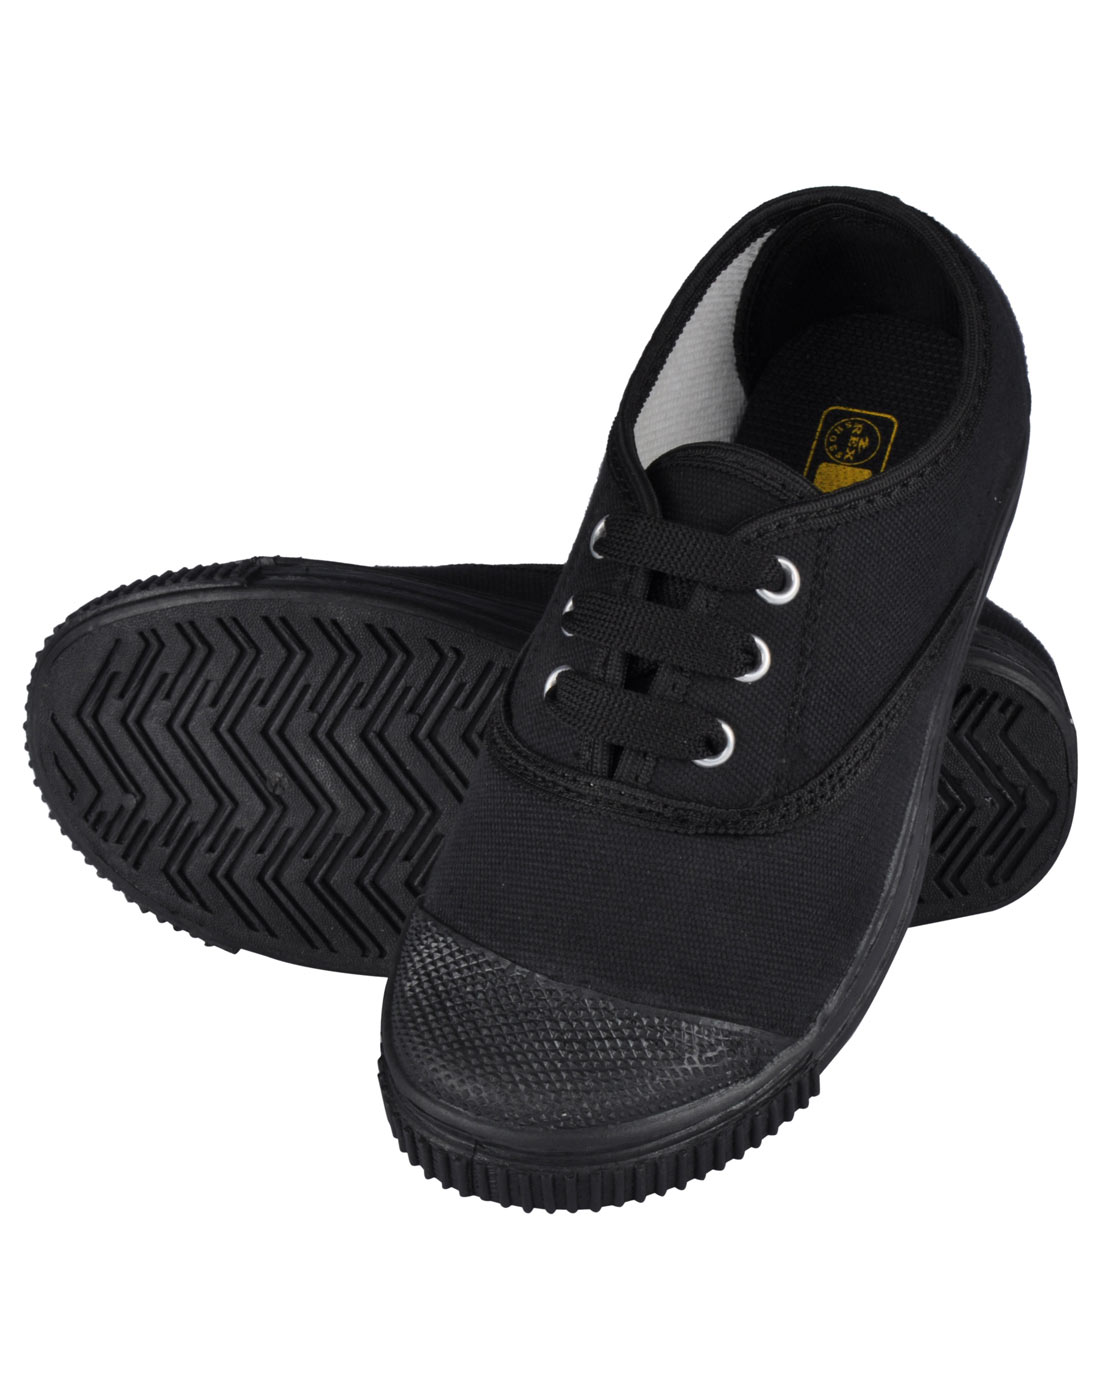 Tennis Shoes Black | Rex Shoes